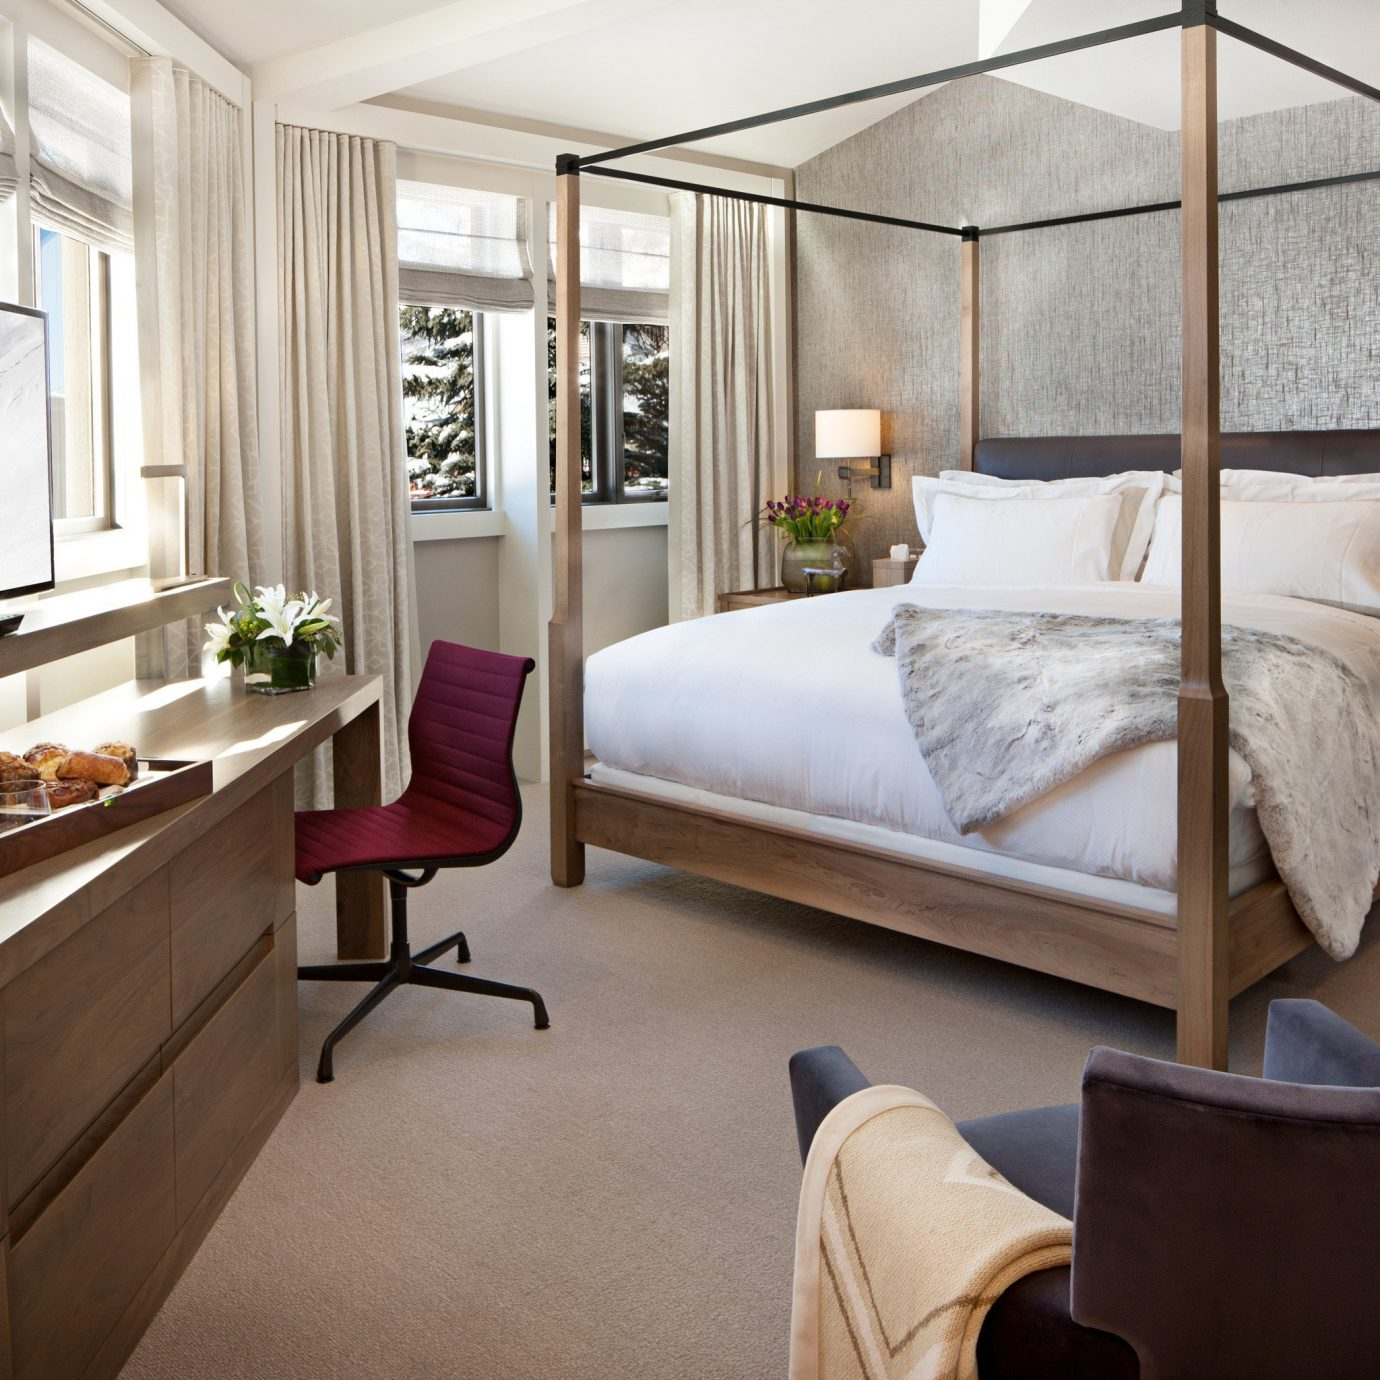 Bedroom Celebs Hotels Modern Scenic views Trip Ideas property living room home Suite cottage condominium